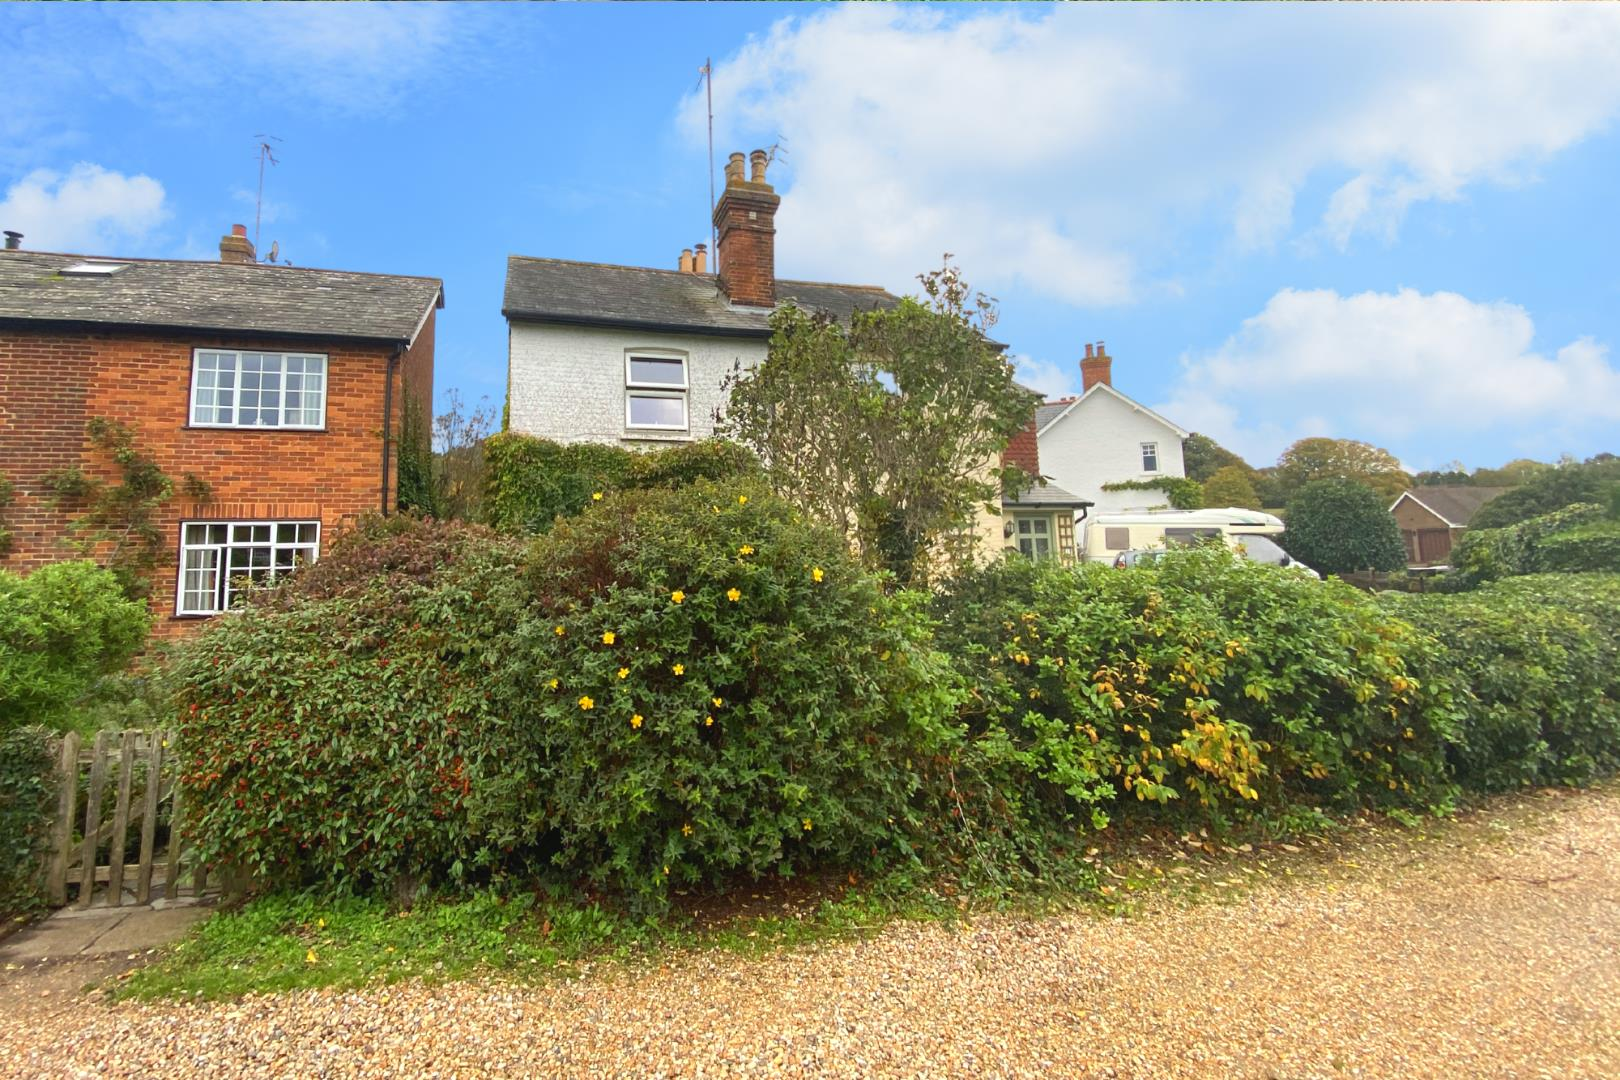 2 bed house for sale in Wonersh  - Property Image 1